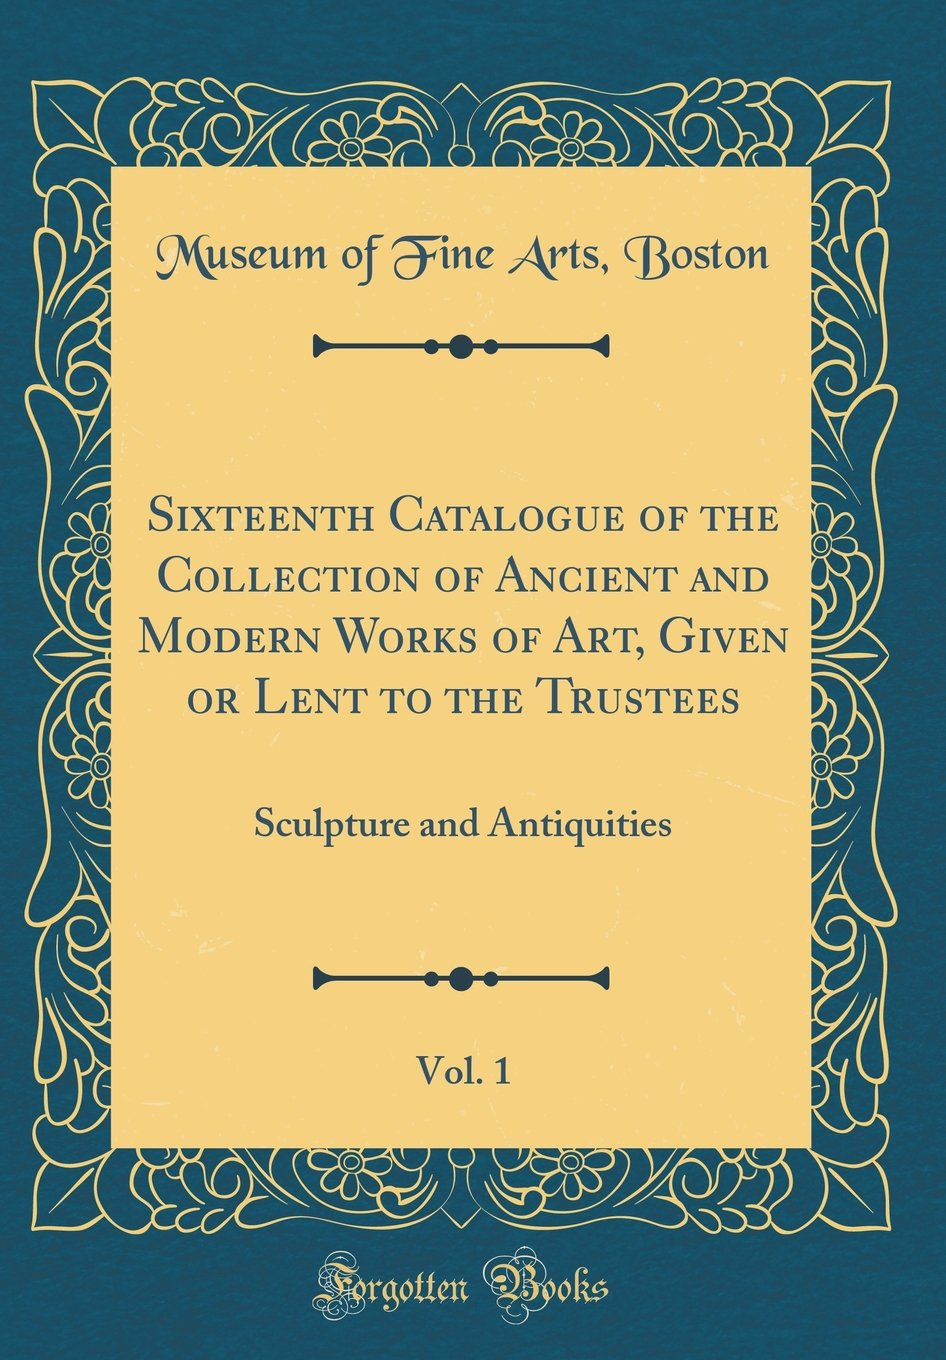 Sixteenth Catalogue of the Collection of Ancient and Modern Works of Art, Given or Lent to the Trustees, Vol. 1: Sculpture and Antiquities (Classic Reprint) PDF